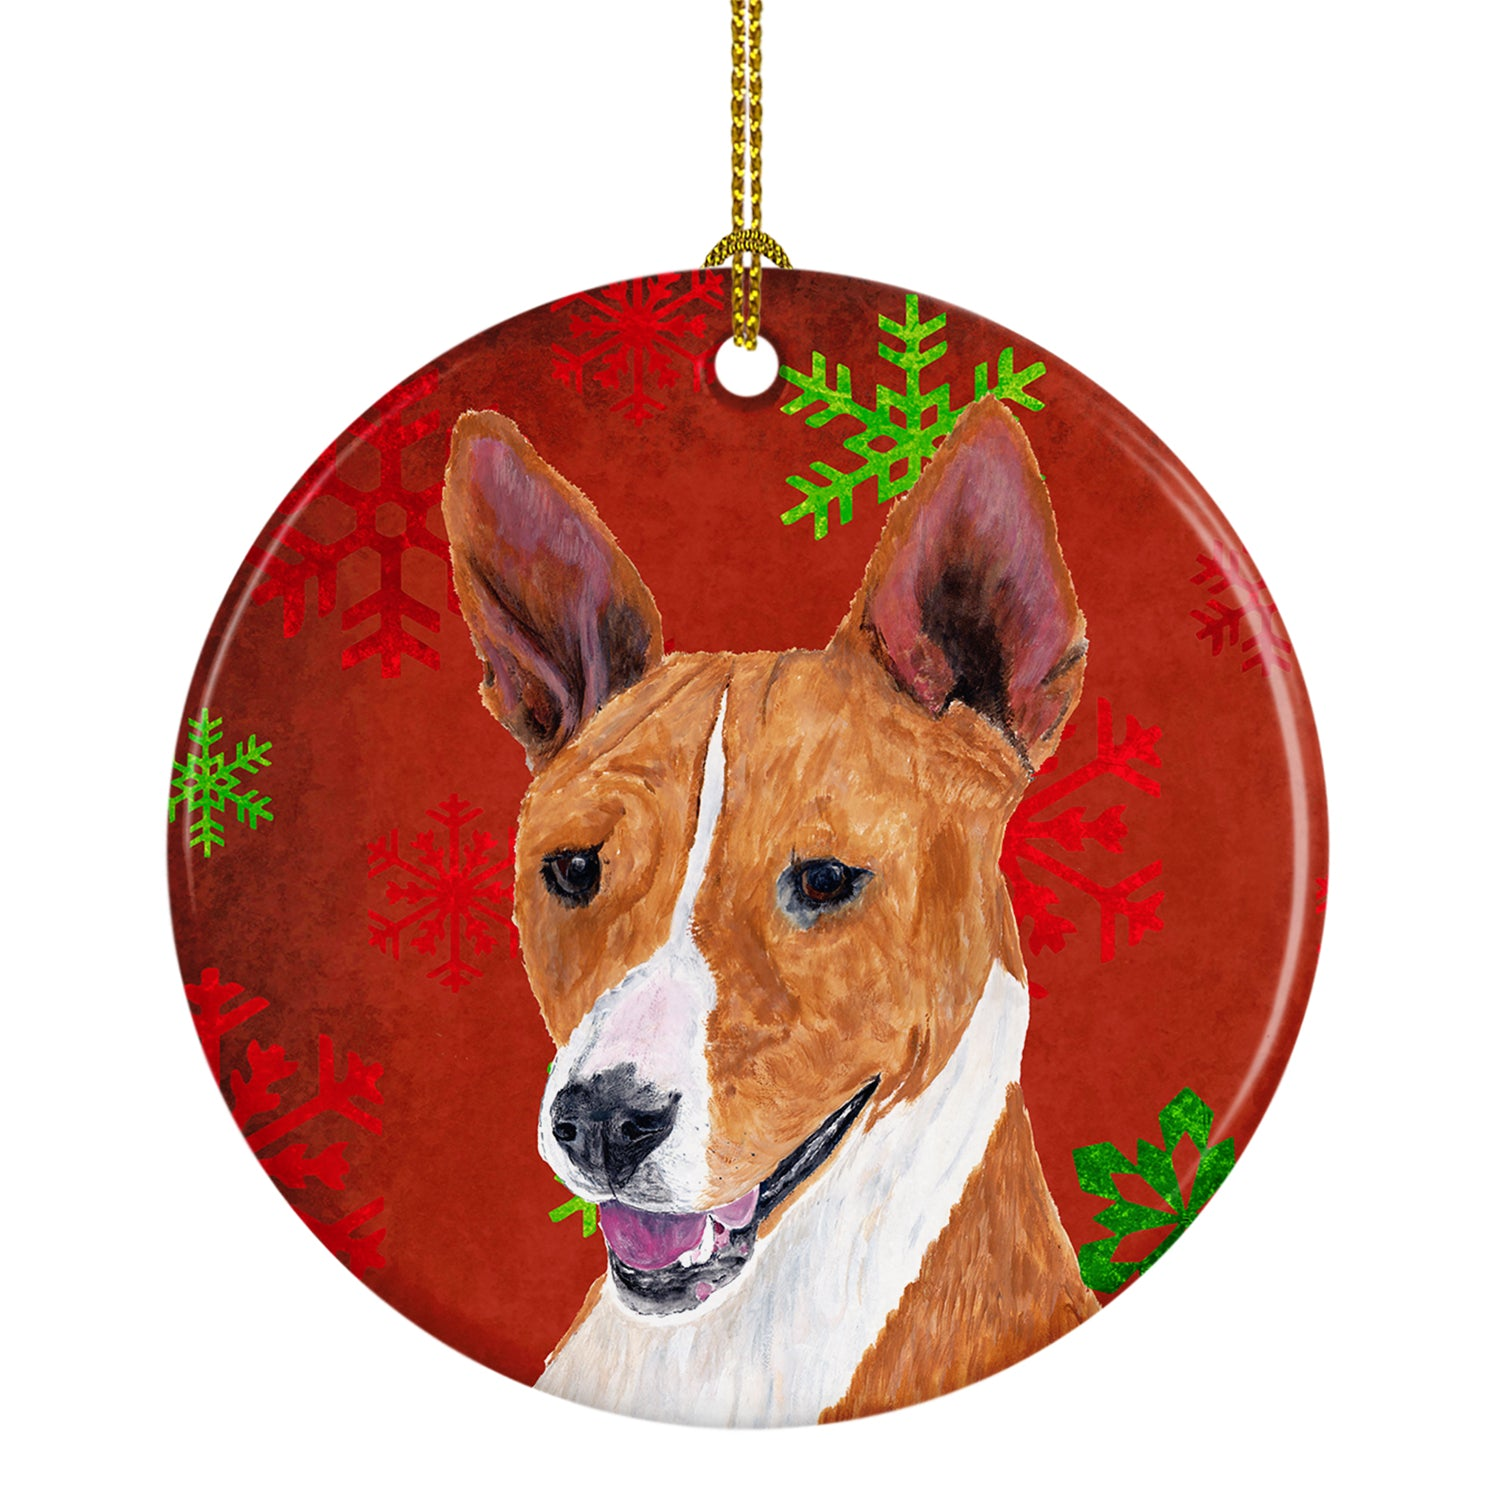 Basenji Red Snowflakes Holiday Christmas Ceramic Ornament SC9427 by Caroline's Treasures